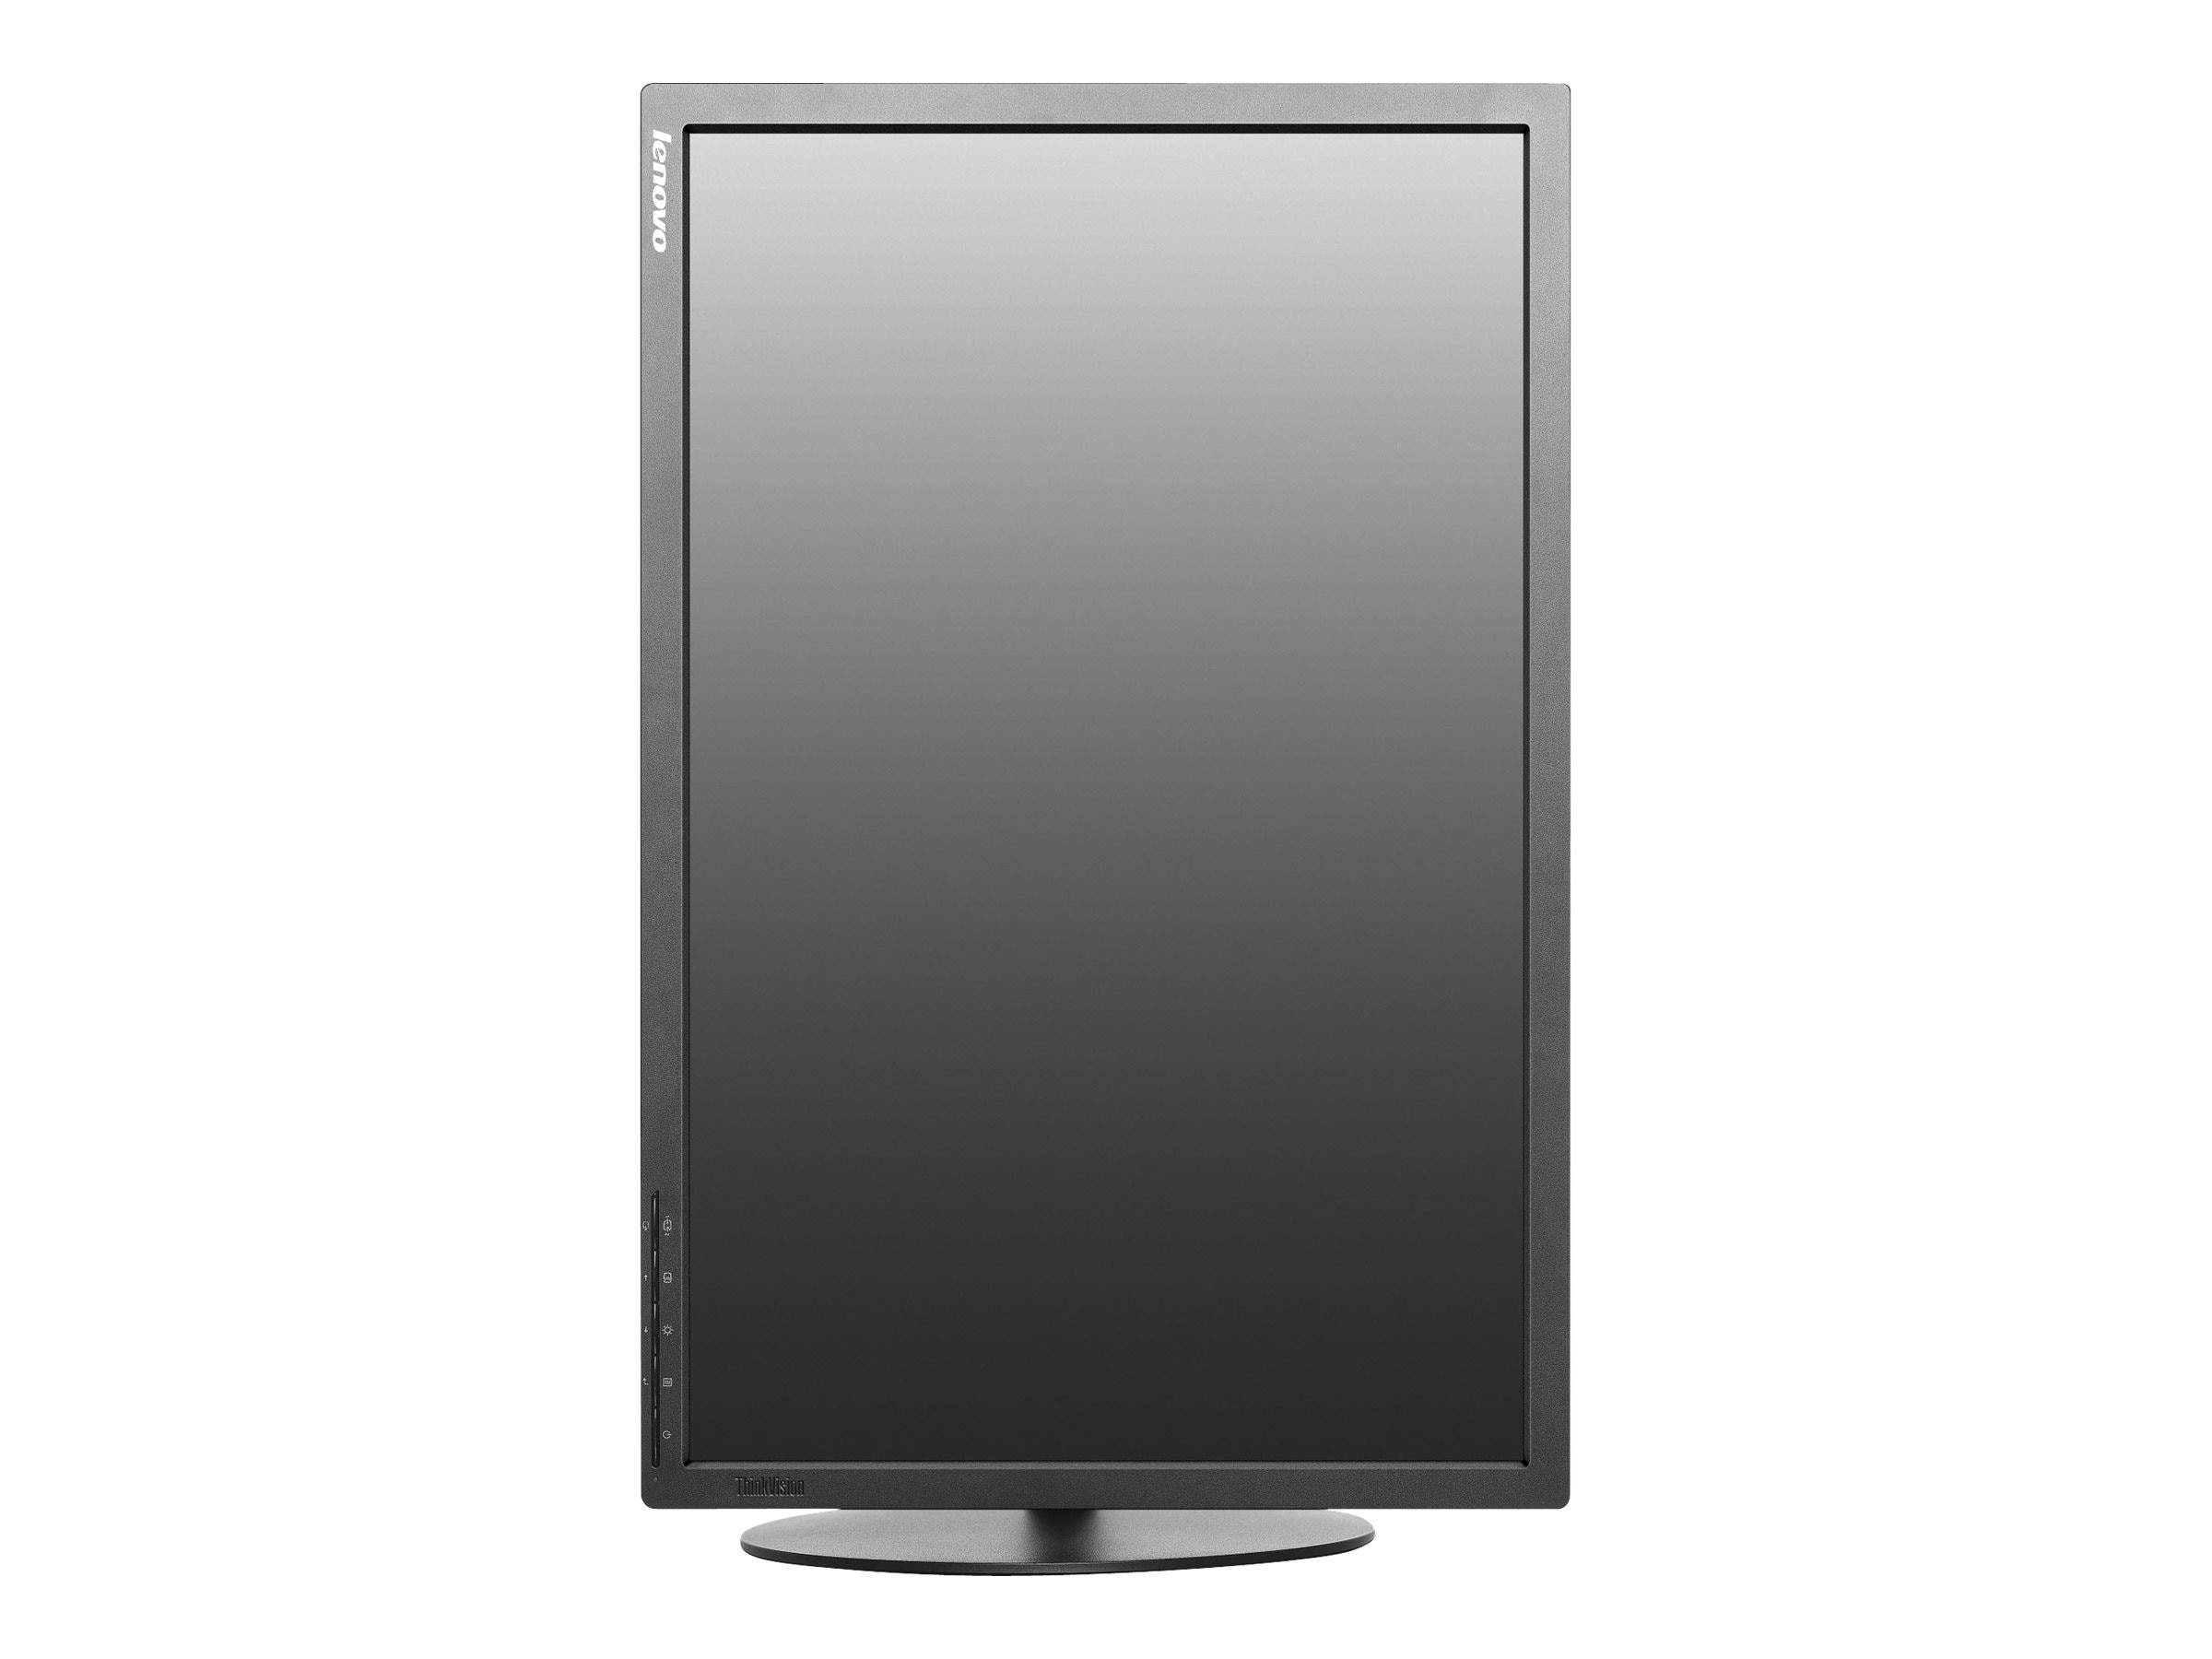 Lenovo 24 T2454p LED-LCD Monitor, Black